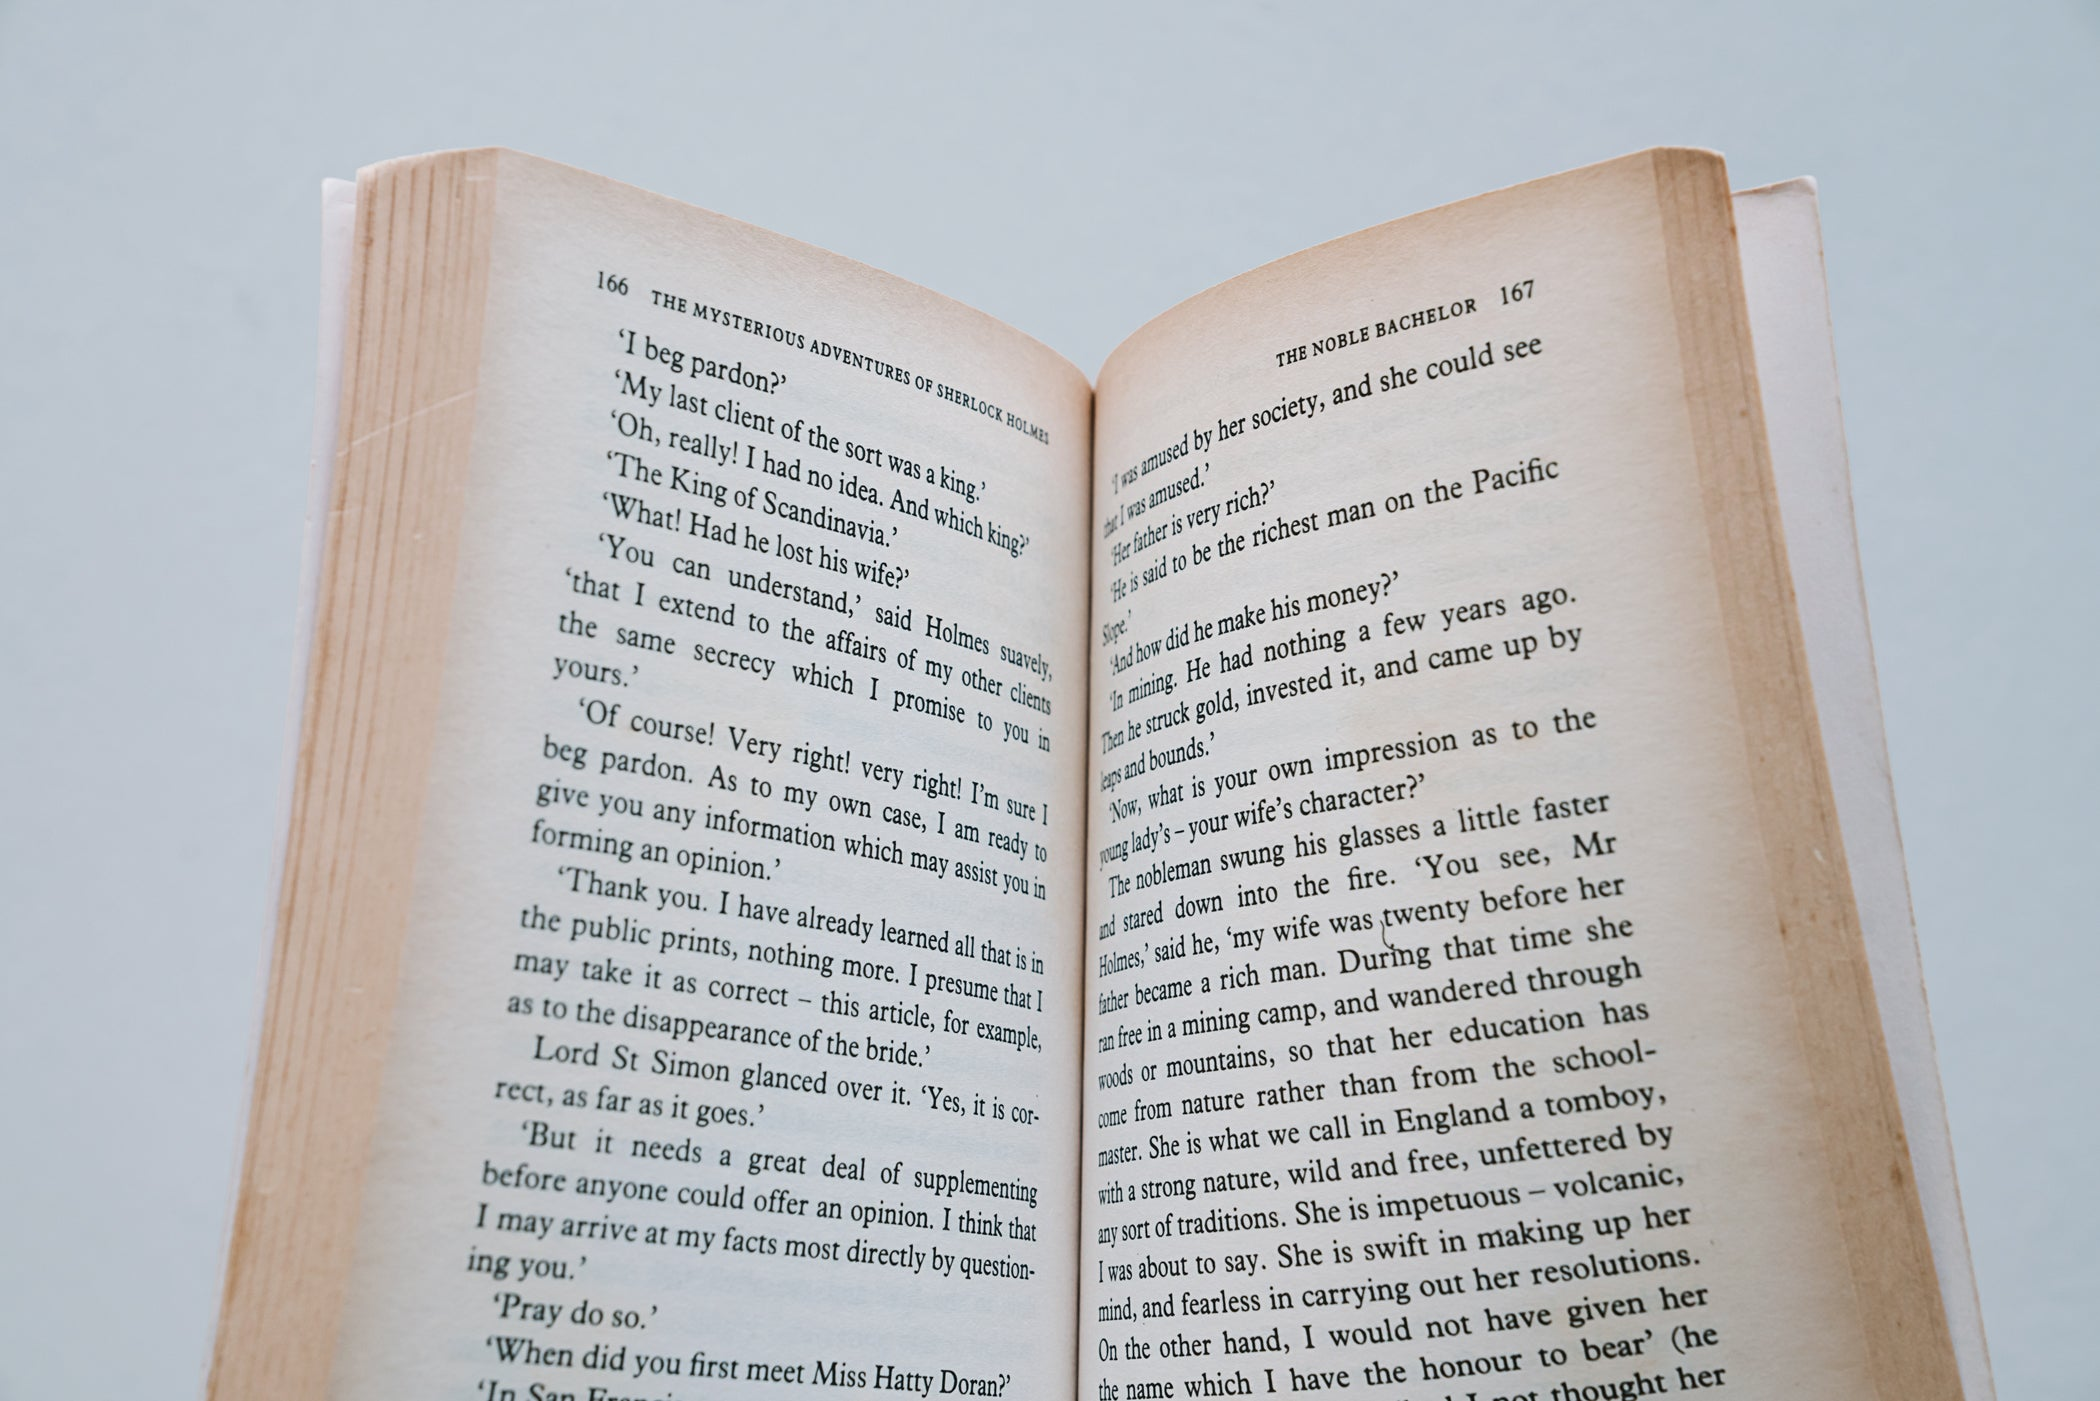 Pages of book in Good condition